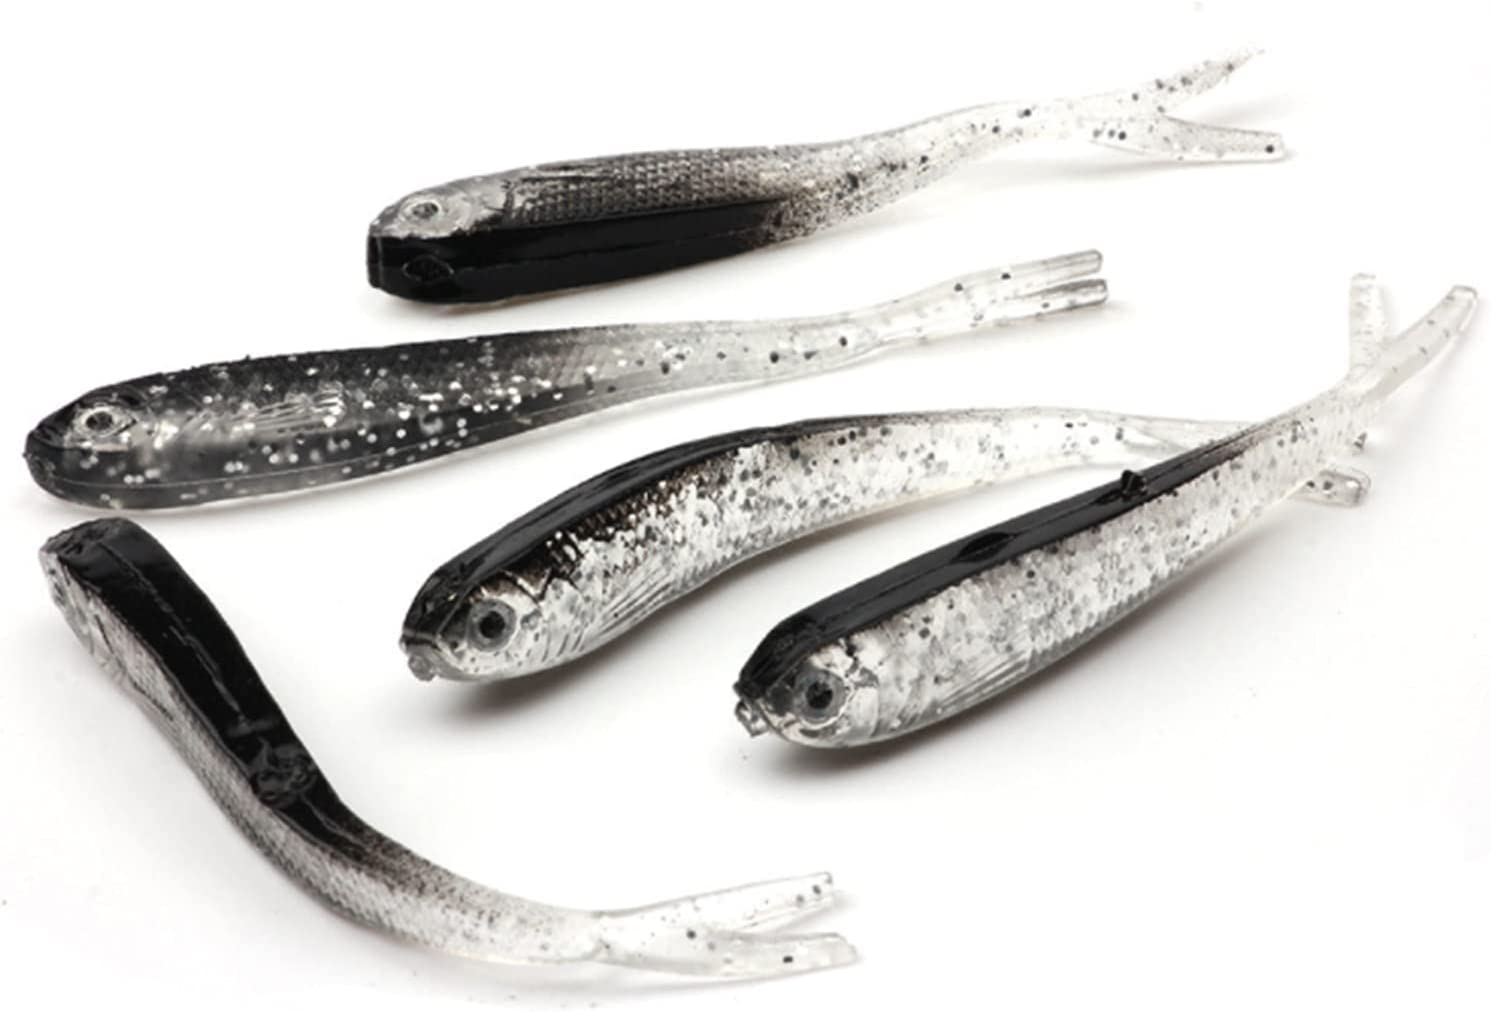 Cafurty 10Pcs Fishing Soft Plastic Crappie Special Inexpensive sale item Lures Lure So Minnow